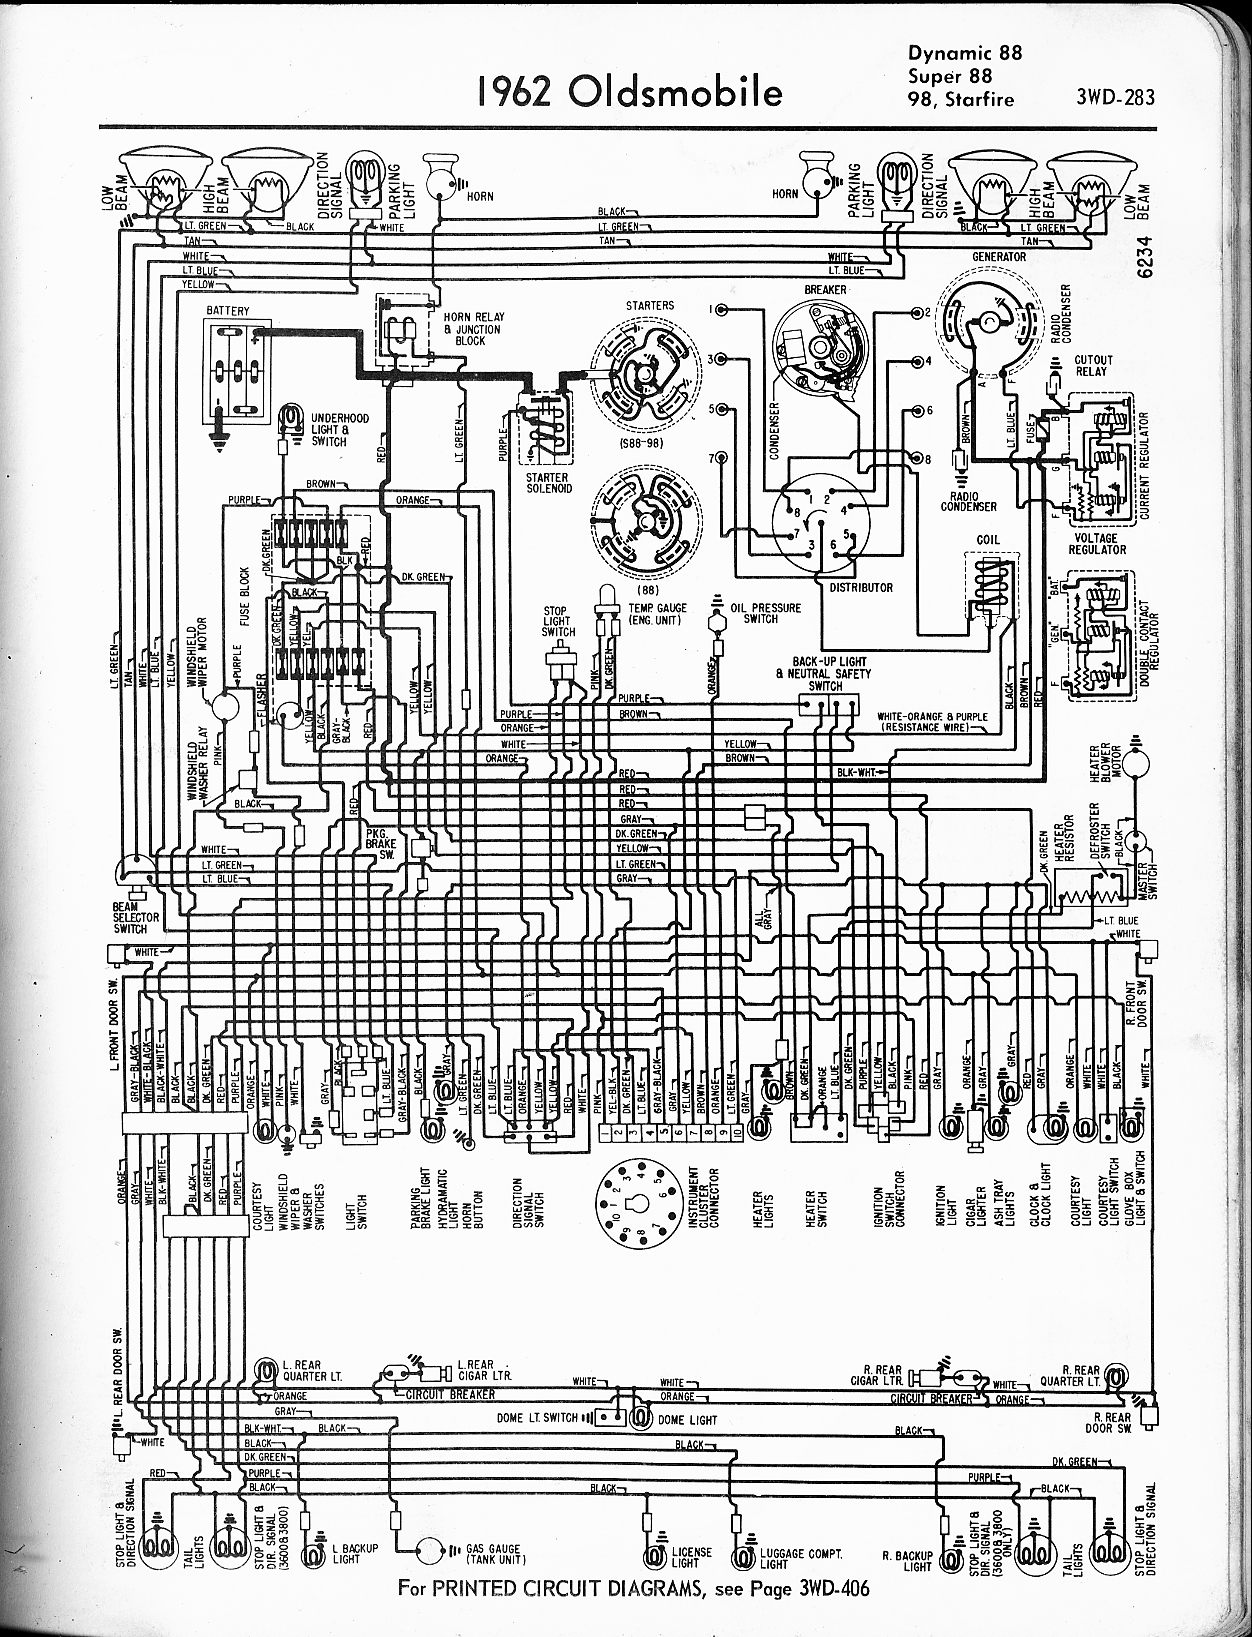 65 Olds Wiring Diagram | Wiring Diagram  Olds Wiring Harness Diagram on 65 ford wiring diagram, 65 olds parts, 65 pontiac wiring diagram, 65 chevy wiring diagram,